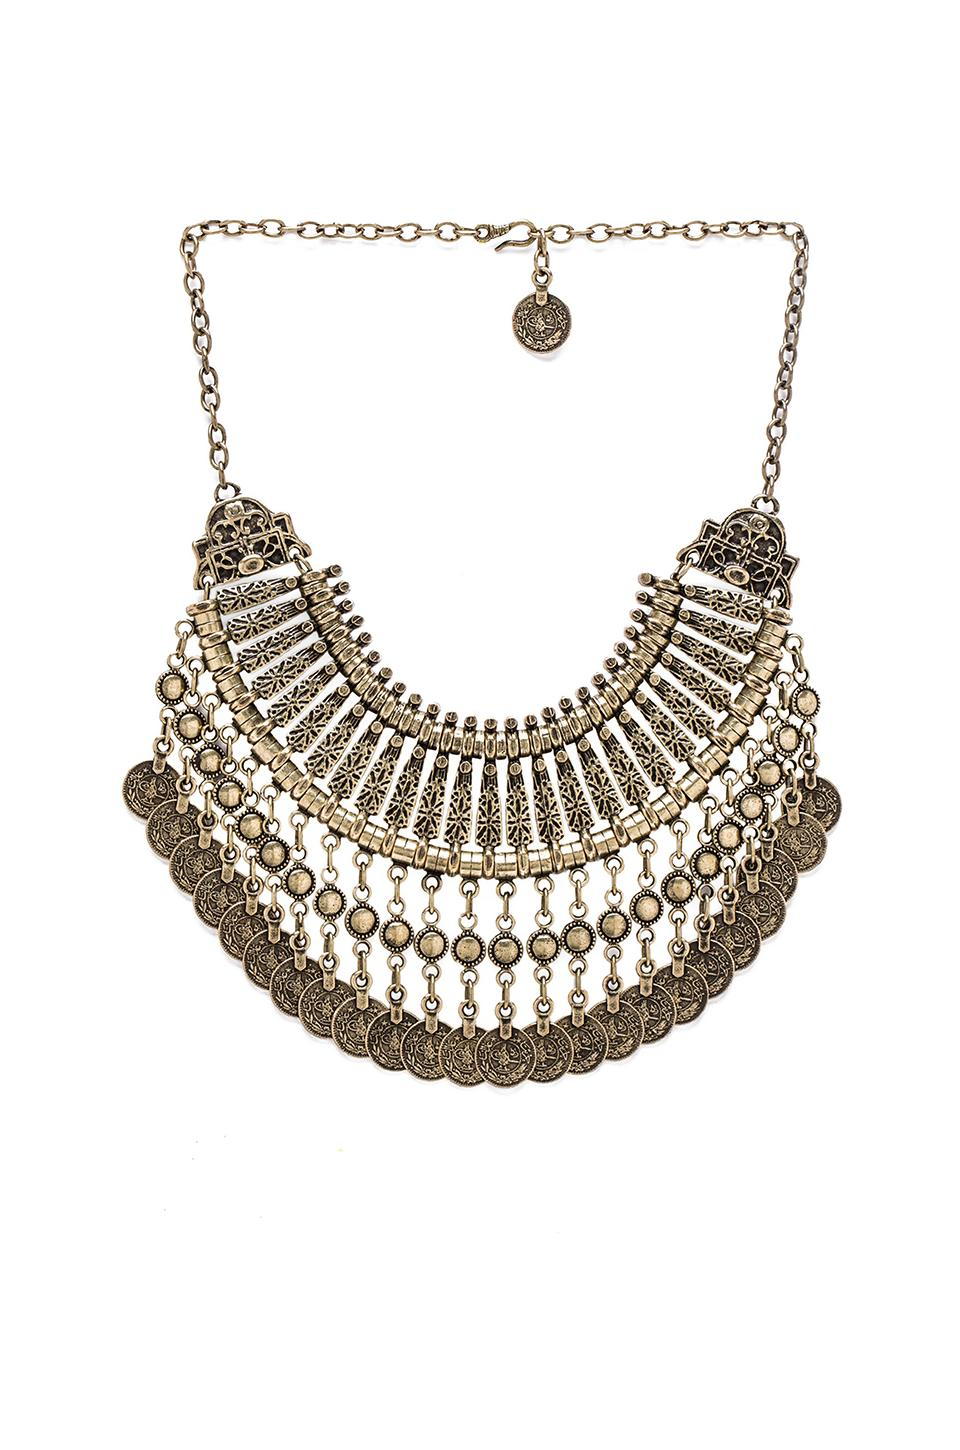 Natalie B Jewelry Fit for a Queen Necklace in Brass